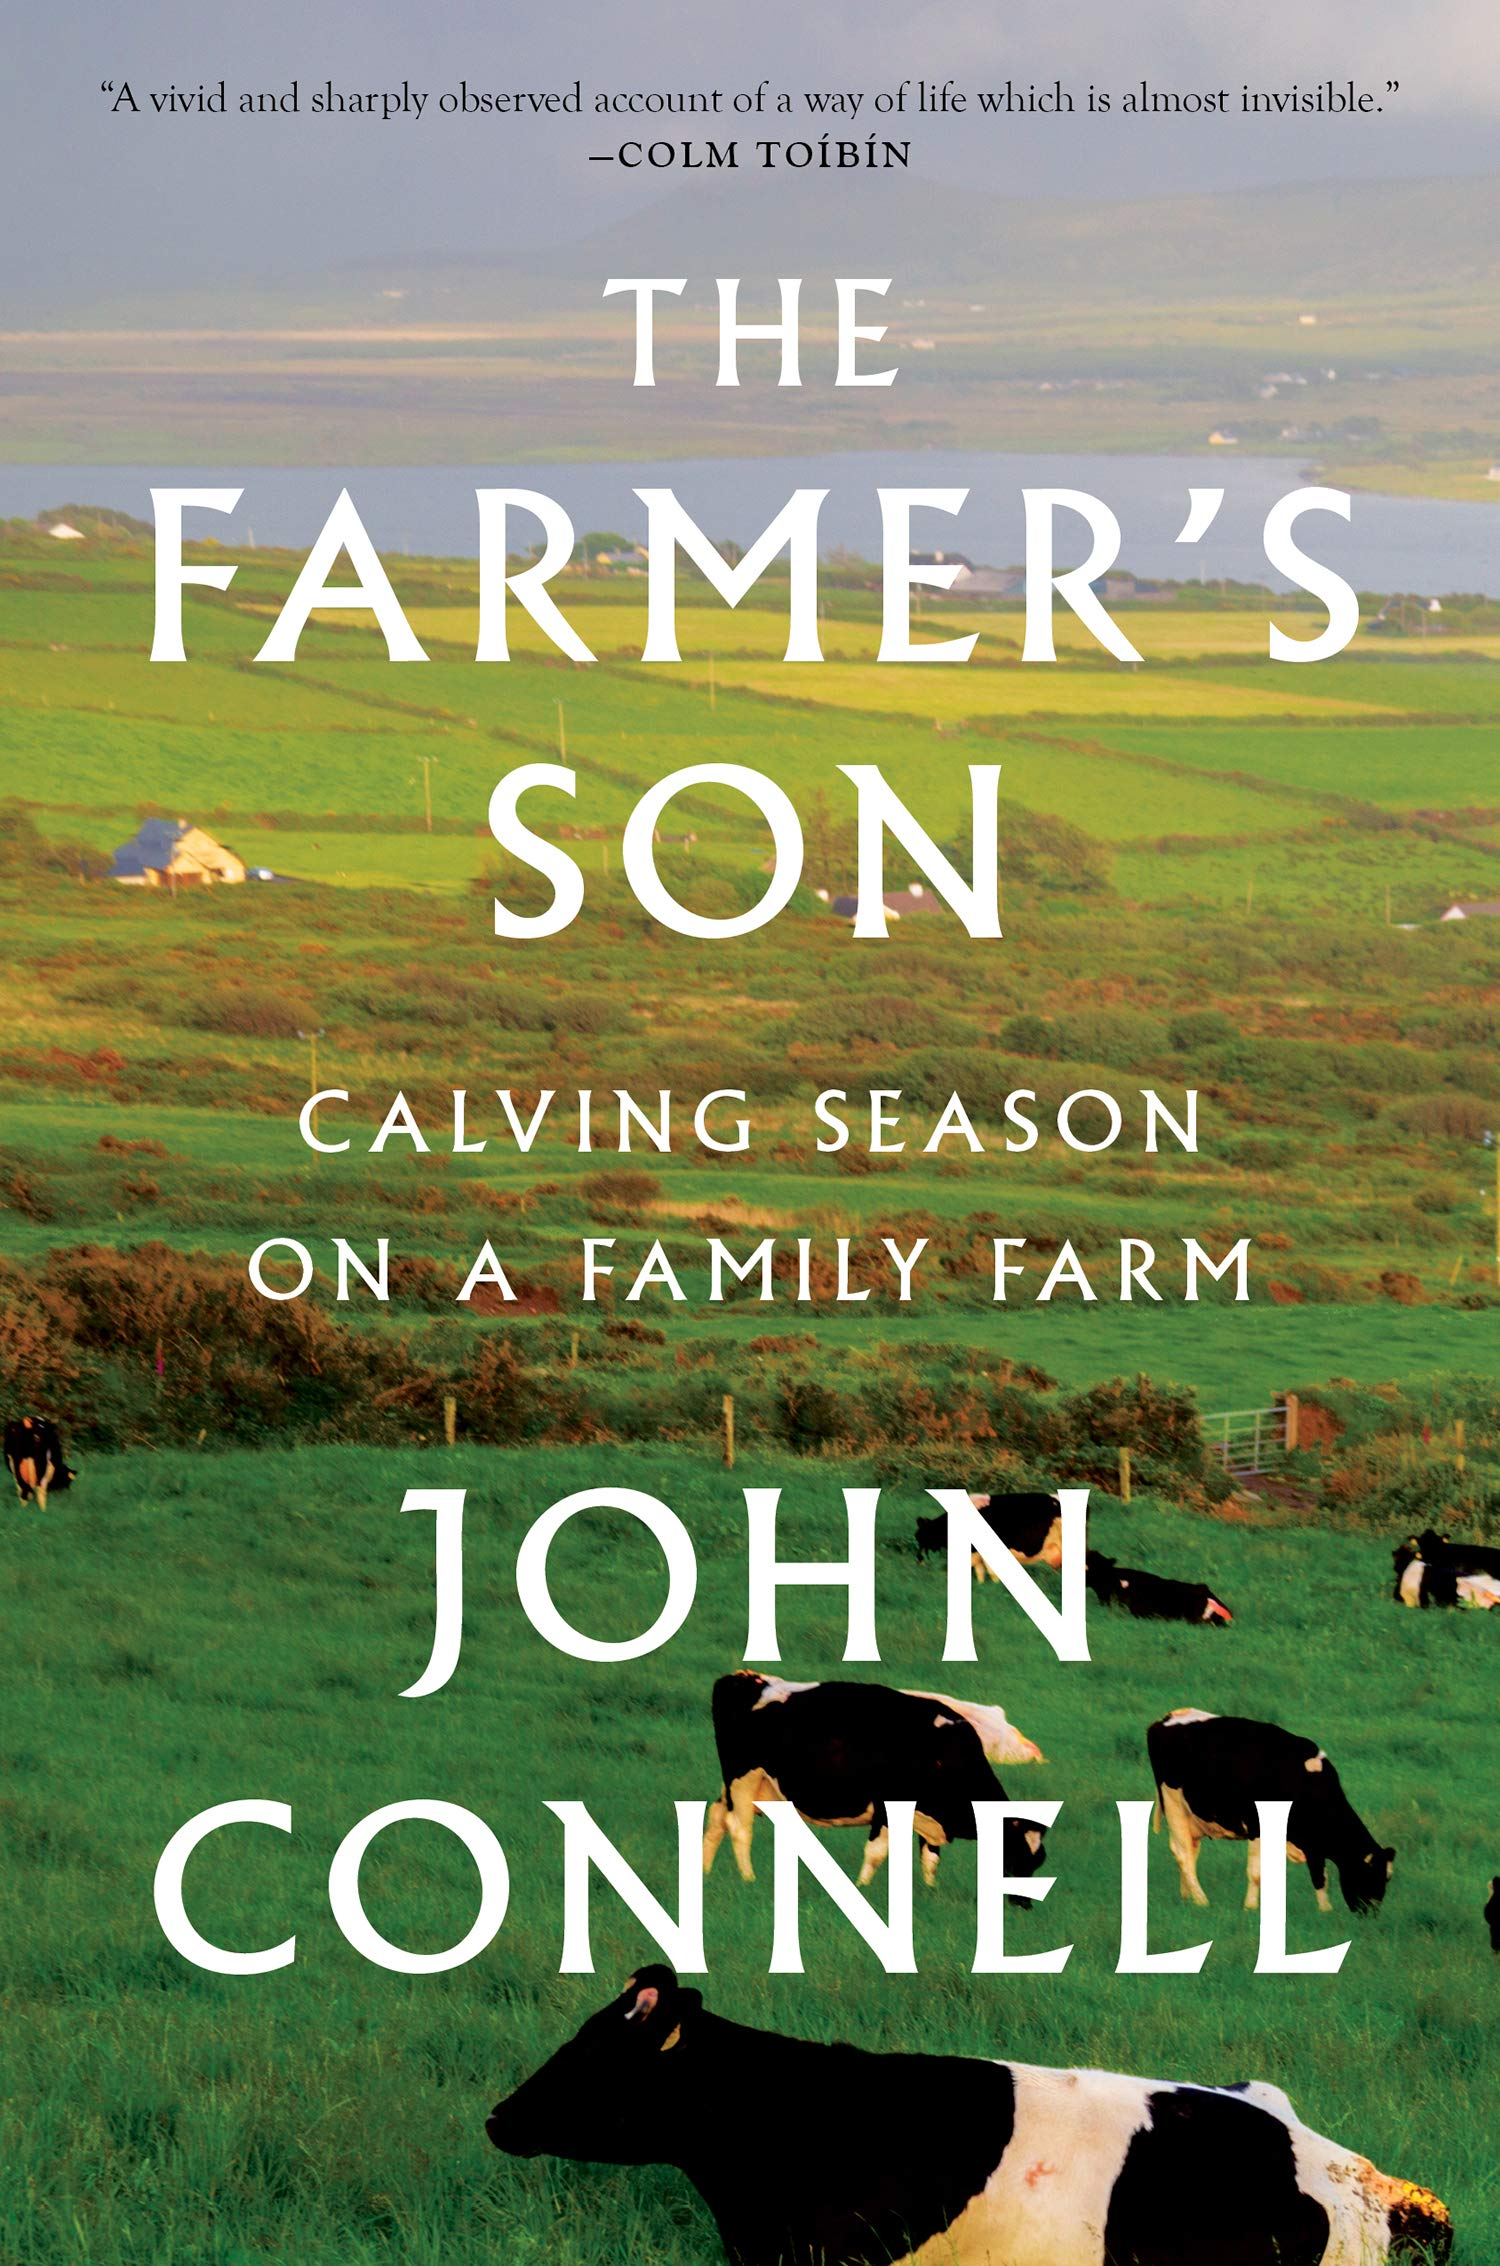 The Farmer S Son Calving Season On A Family Farm Connell John 9781328577993 Amazon Com Books